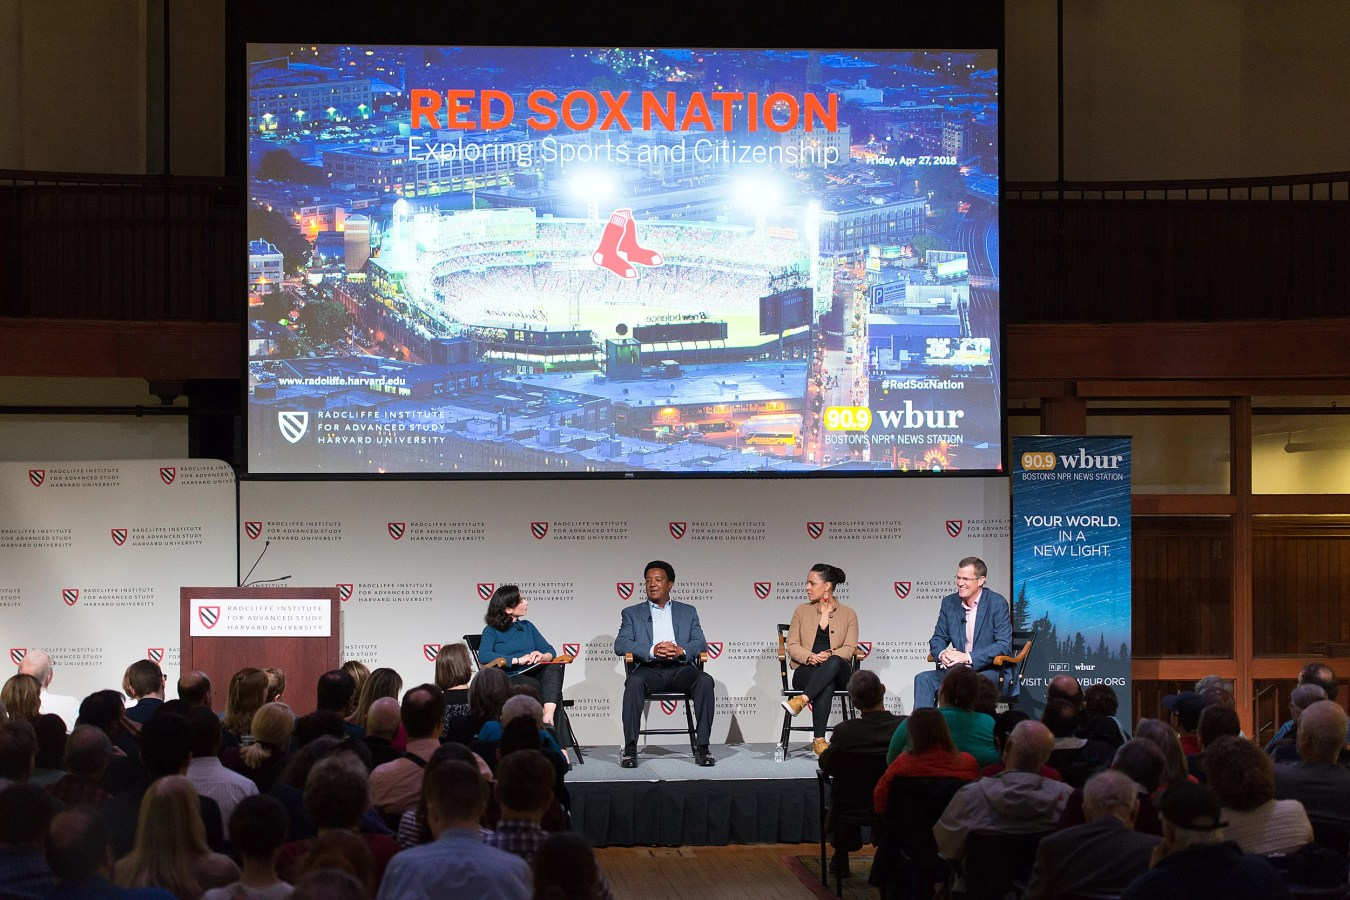 Red Sox fans and community members flocked to Radcliffe to hear the discussion between Shira Springer (from left), Pedro Martinez, Rebekah Salwasser, and Sam Kennedy. Photo by Kevin Grady/Radcliffe Institute